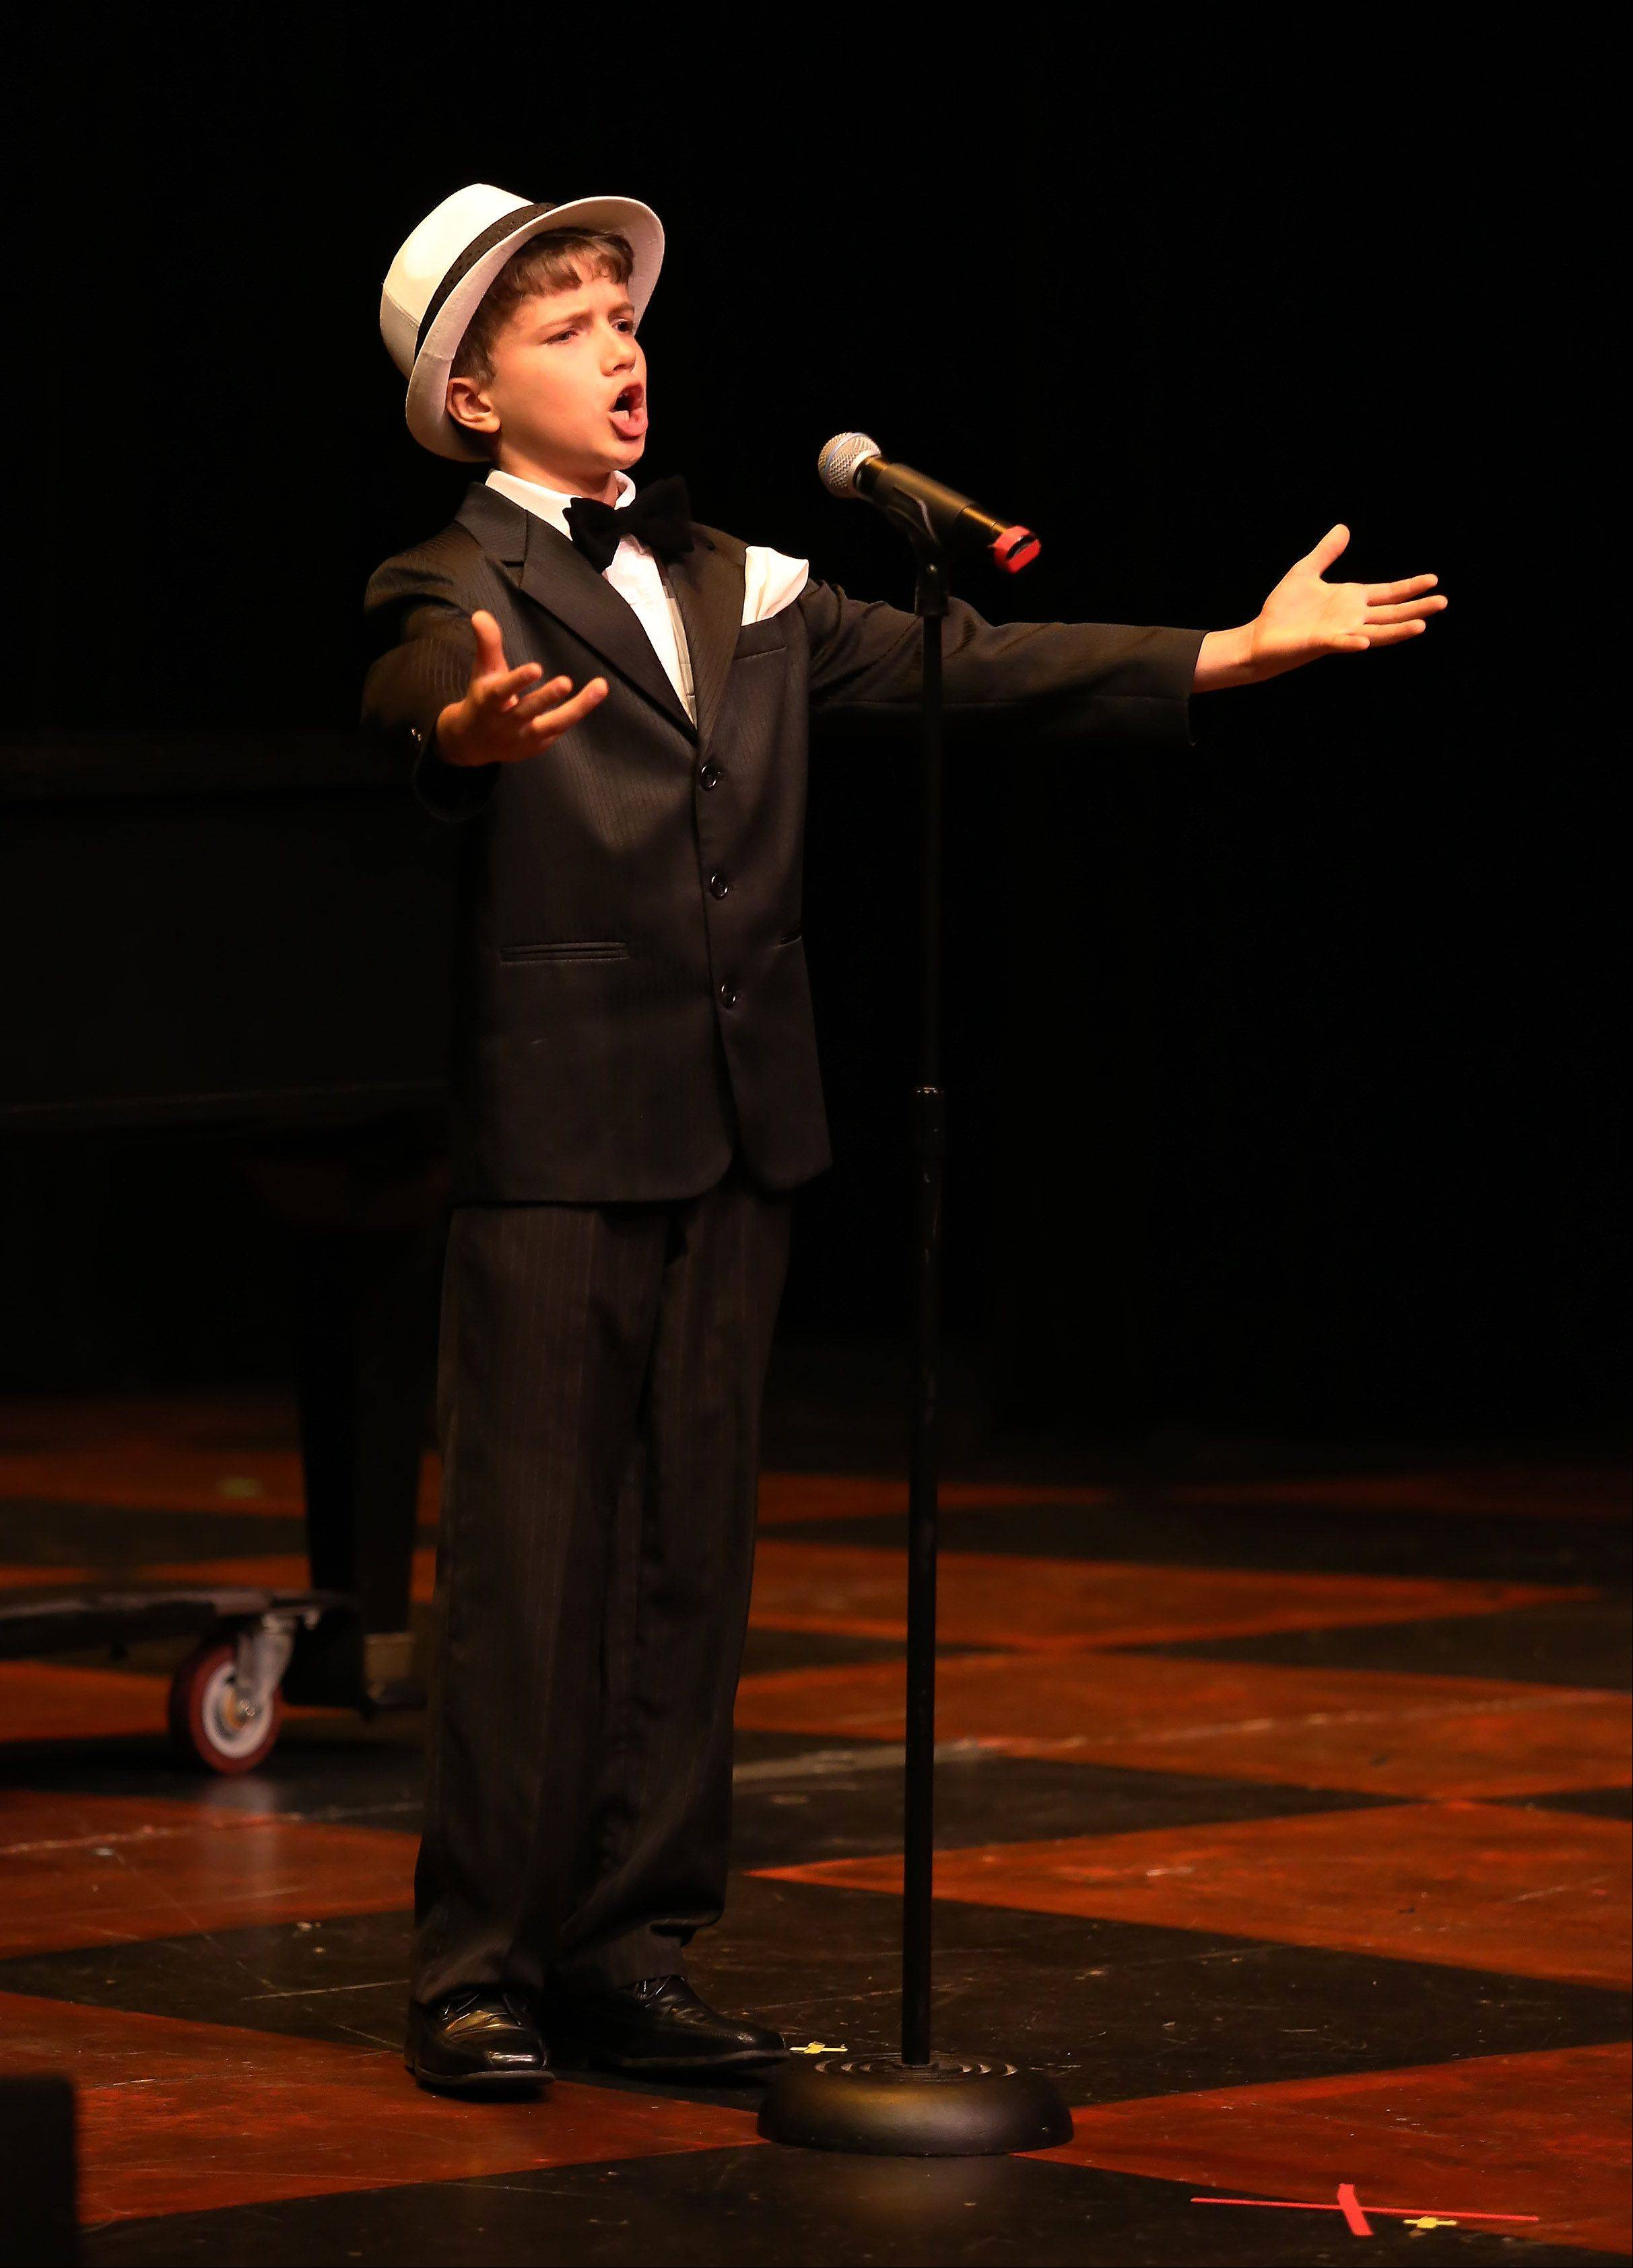 Sheridan Archbold, 11, of Yorkville, performs an opera during the Suburban Chicago's Got Talent competition Sunday night at the Metropolis Performing Arts Centre in Arlington Heights. The summer-long talent contest is presented by the Daily Herald and sponsored by the Arlington Heights Chamber of Commerce.